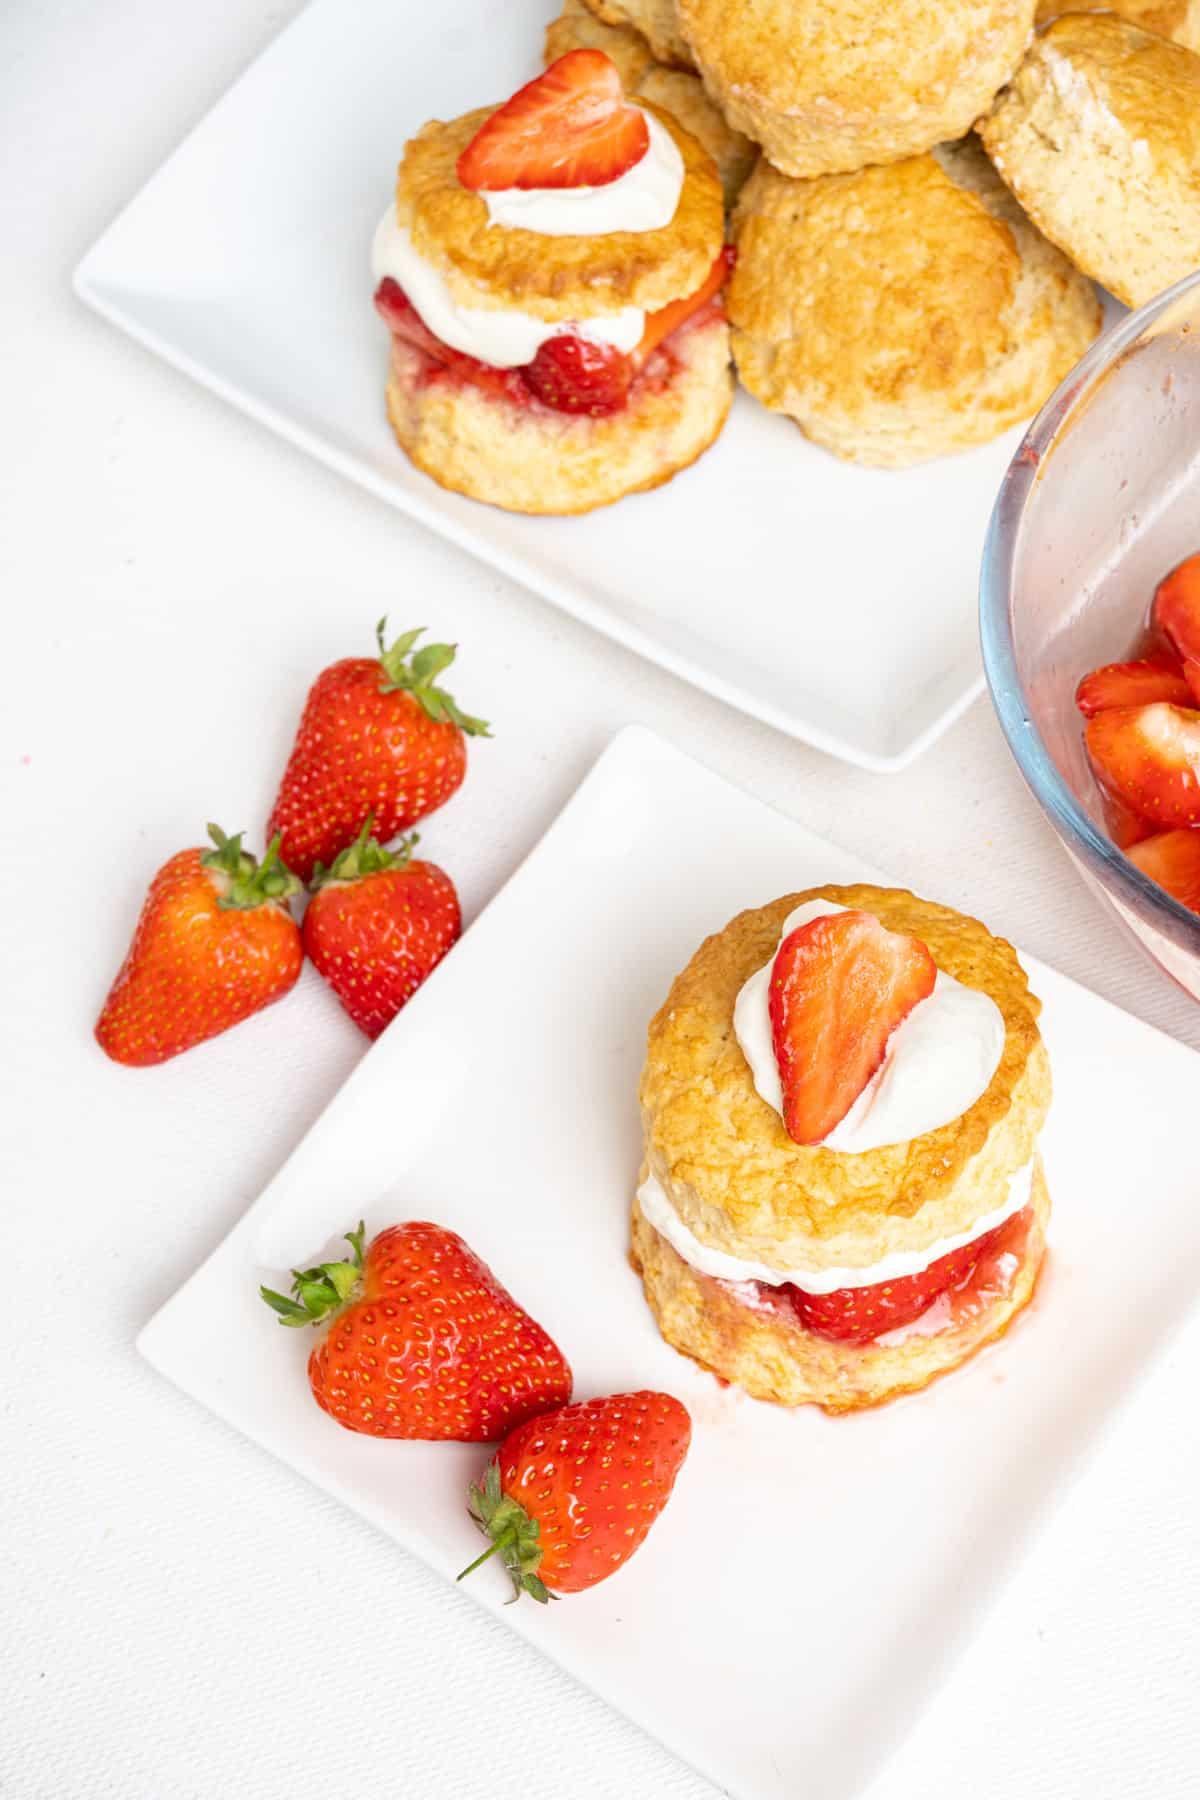 A tall biscuit with a cream and strawberry filling and topping served on a plate with fresh strawberries. More shortcakes on a serving platter in the back.